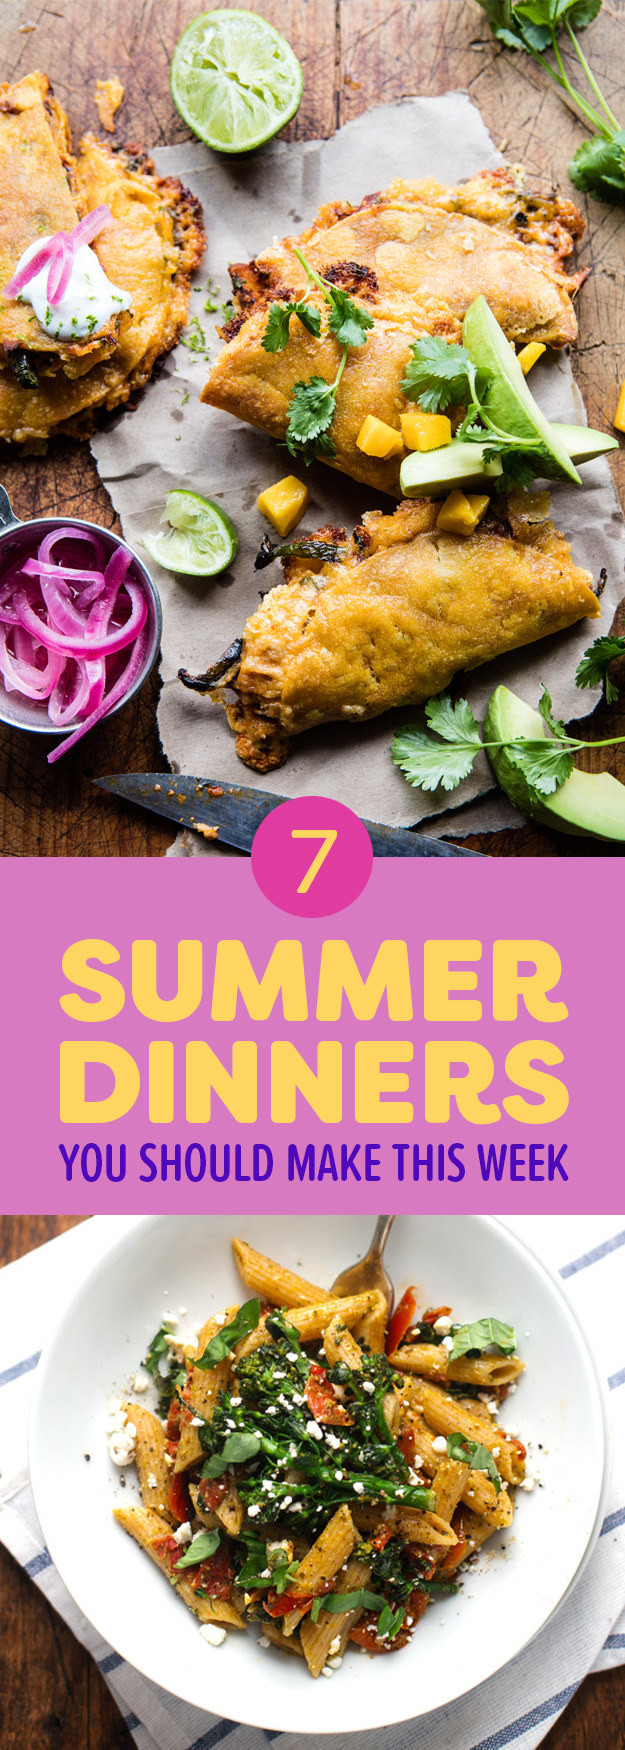 Cheap Summer Dinners  7 Summer Dinners You Should Make This Week